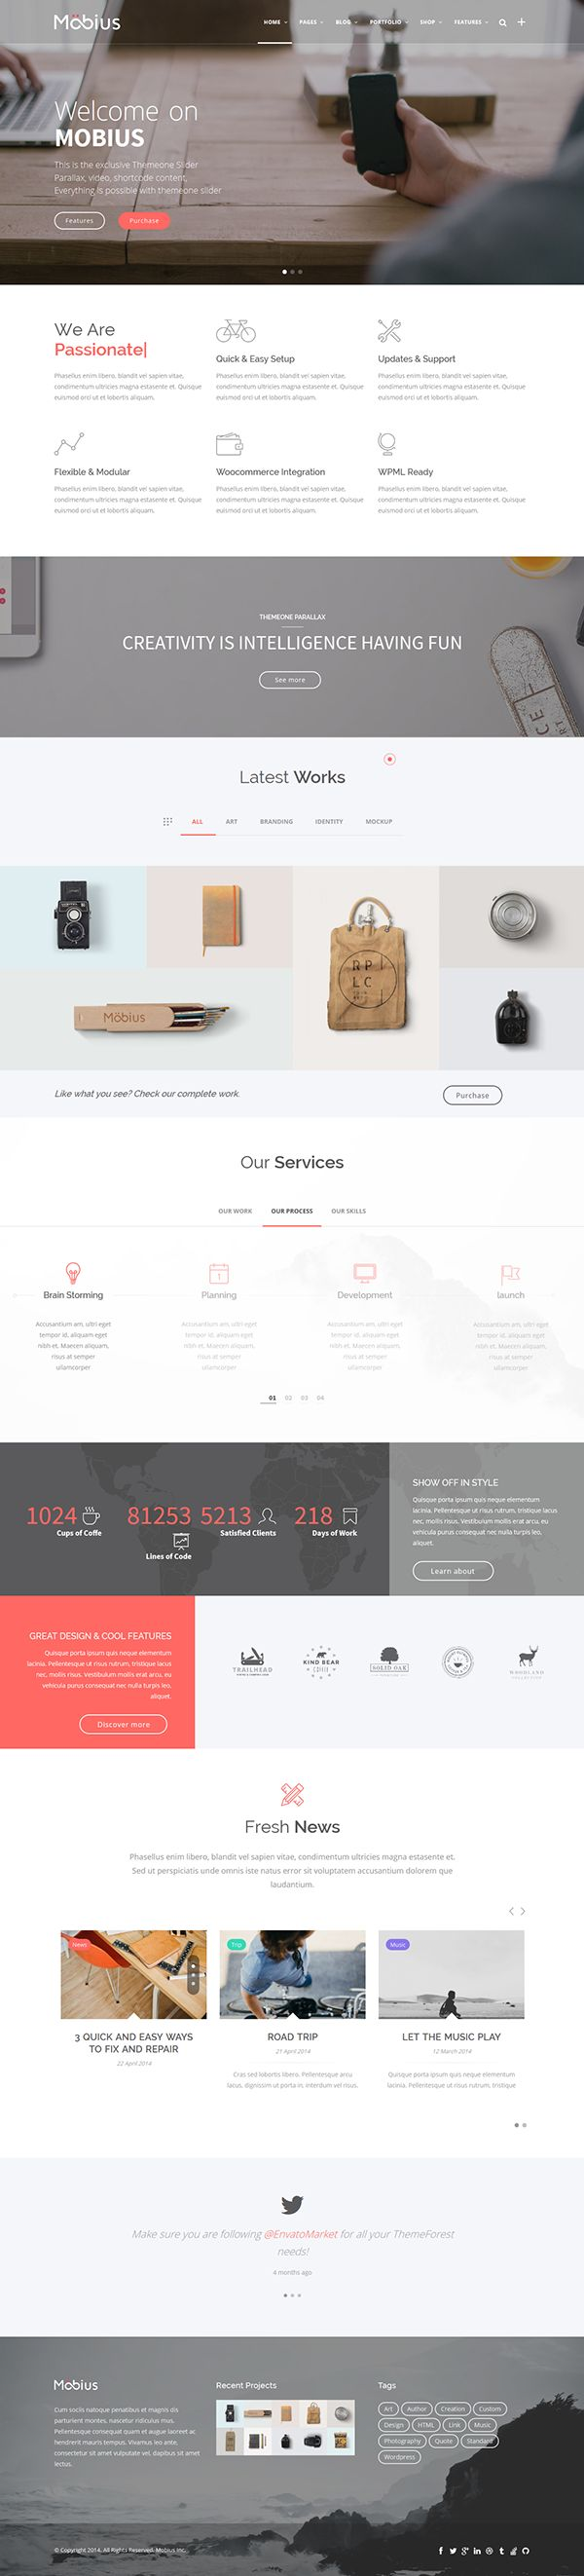 Mobius - Responsive Multi-Purpose WordPress Theme on Themeforest